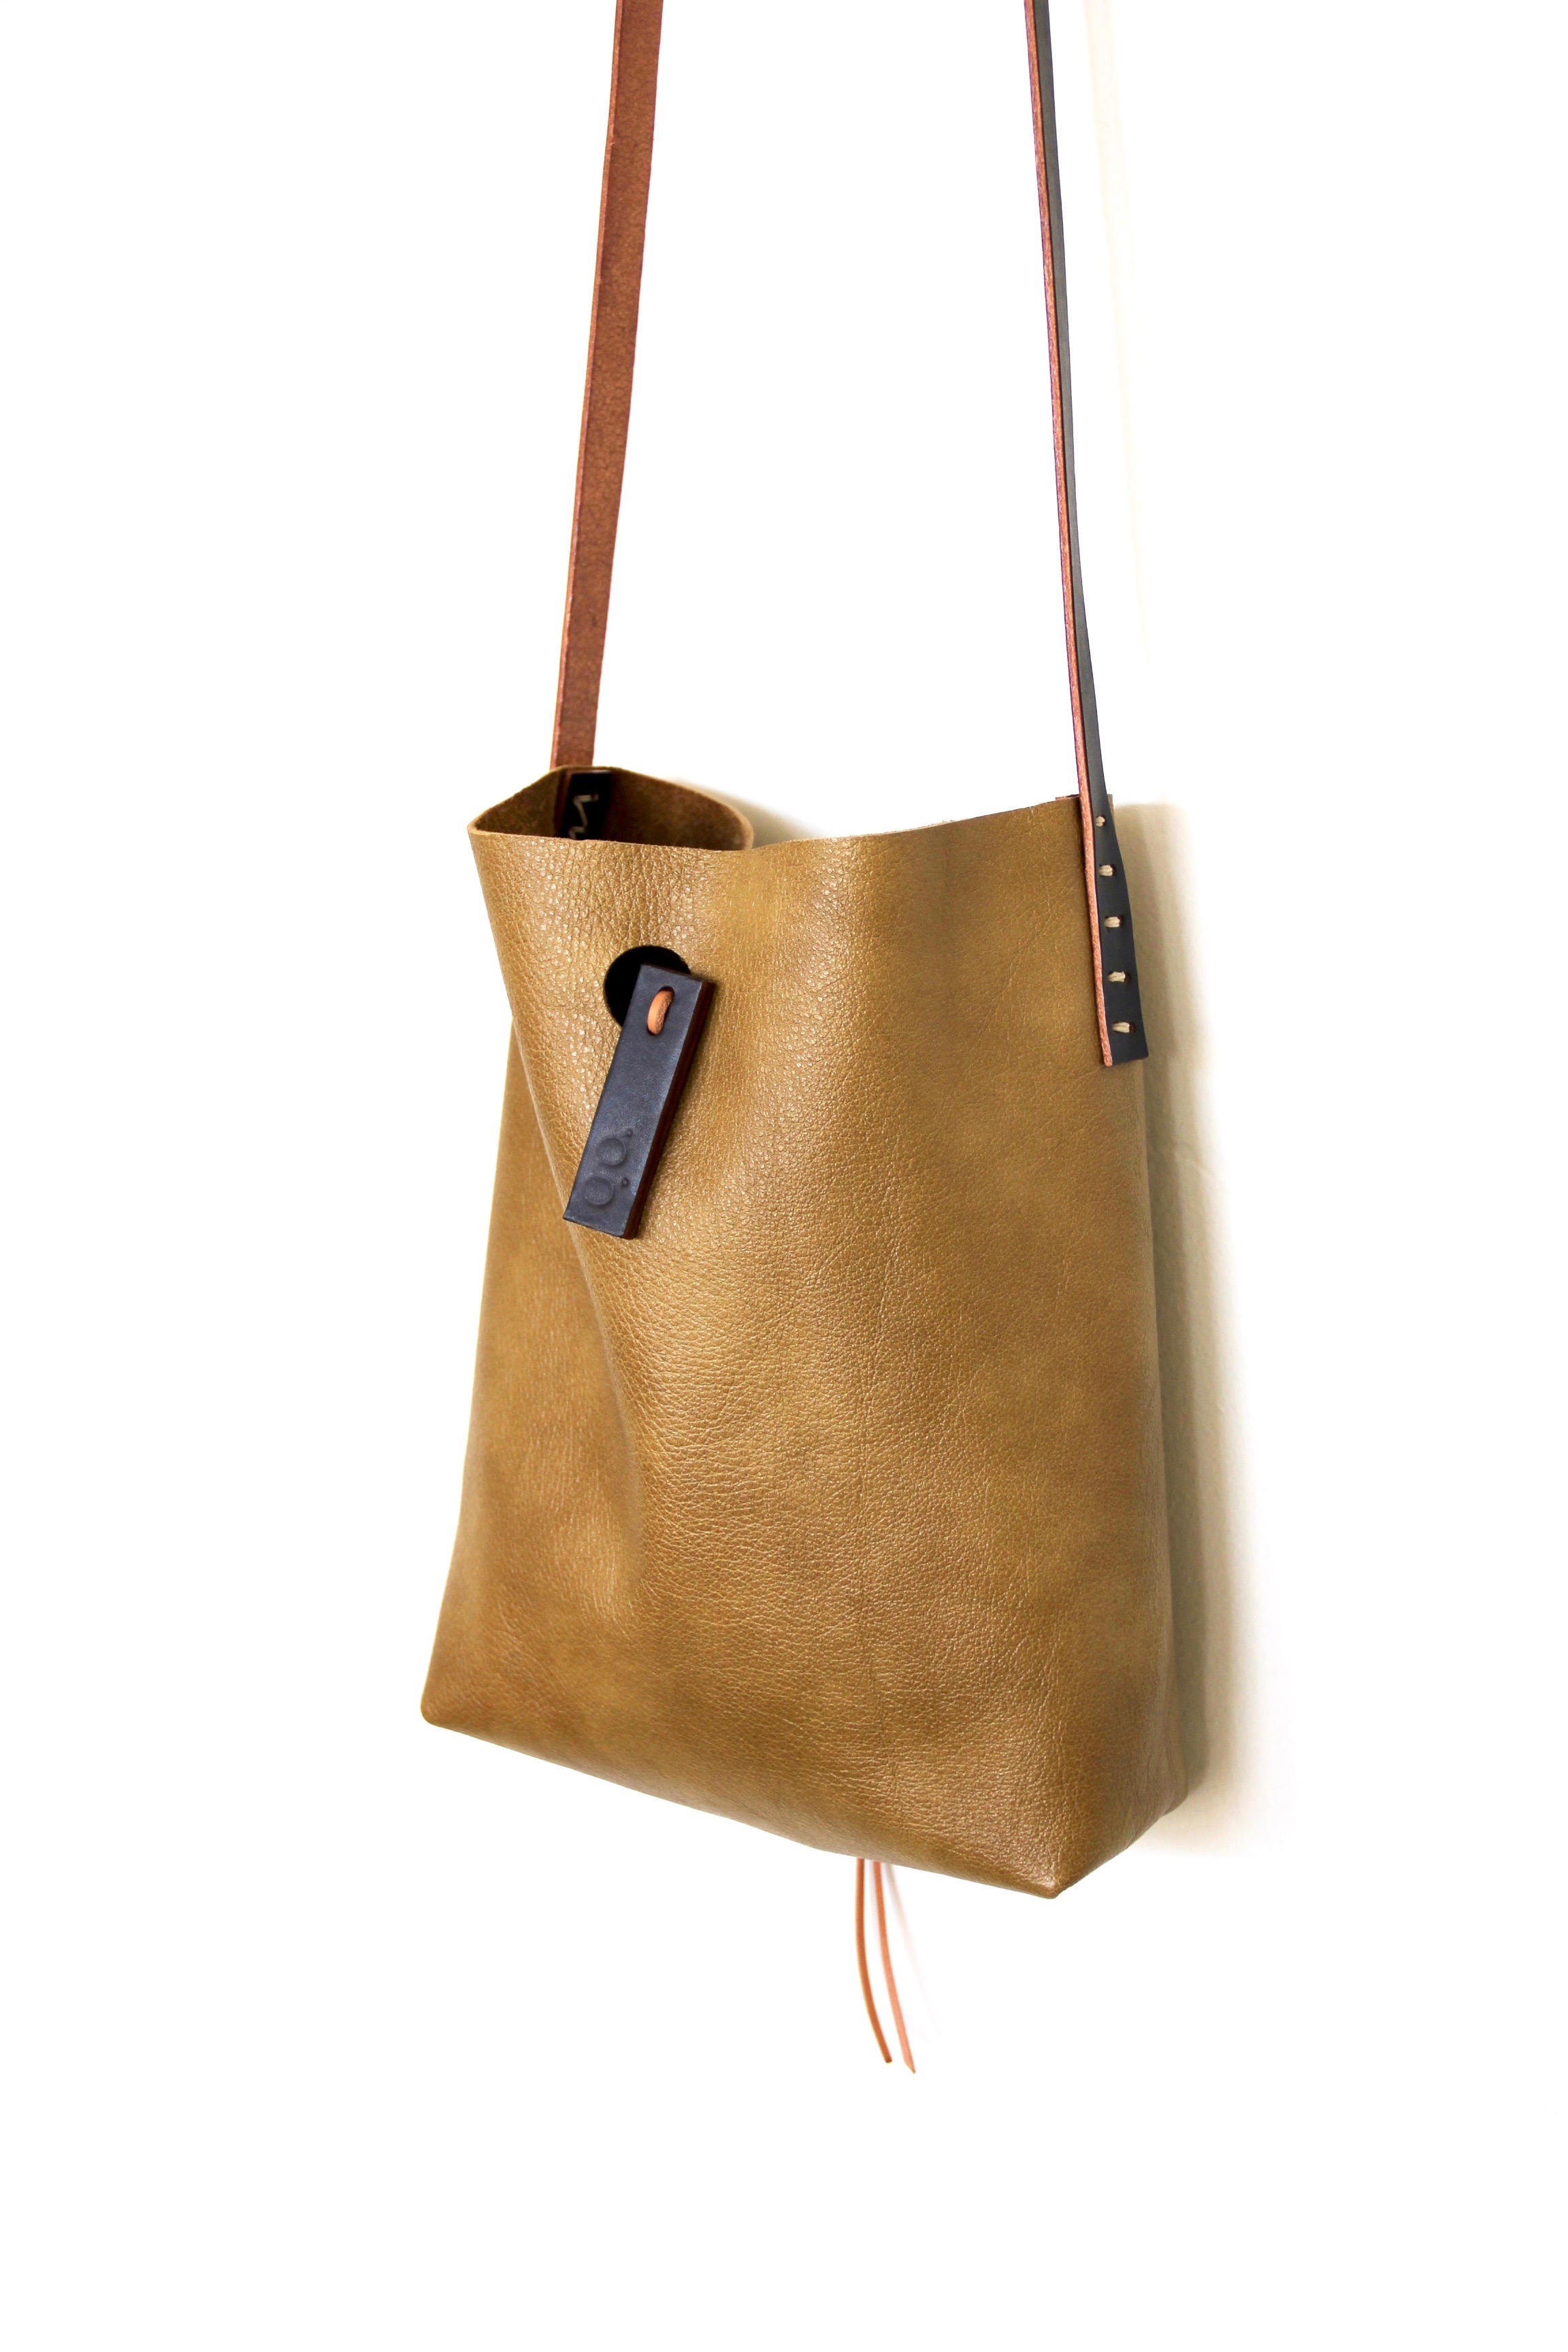 mini.malist x-body leather tote in 'de oro'